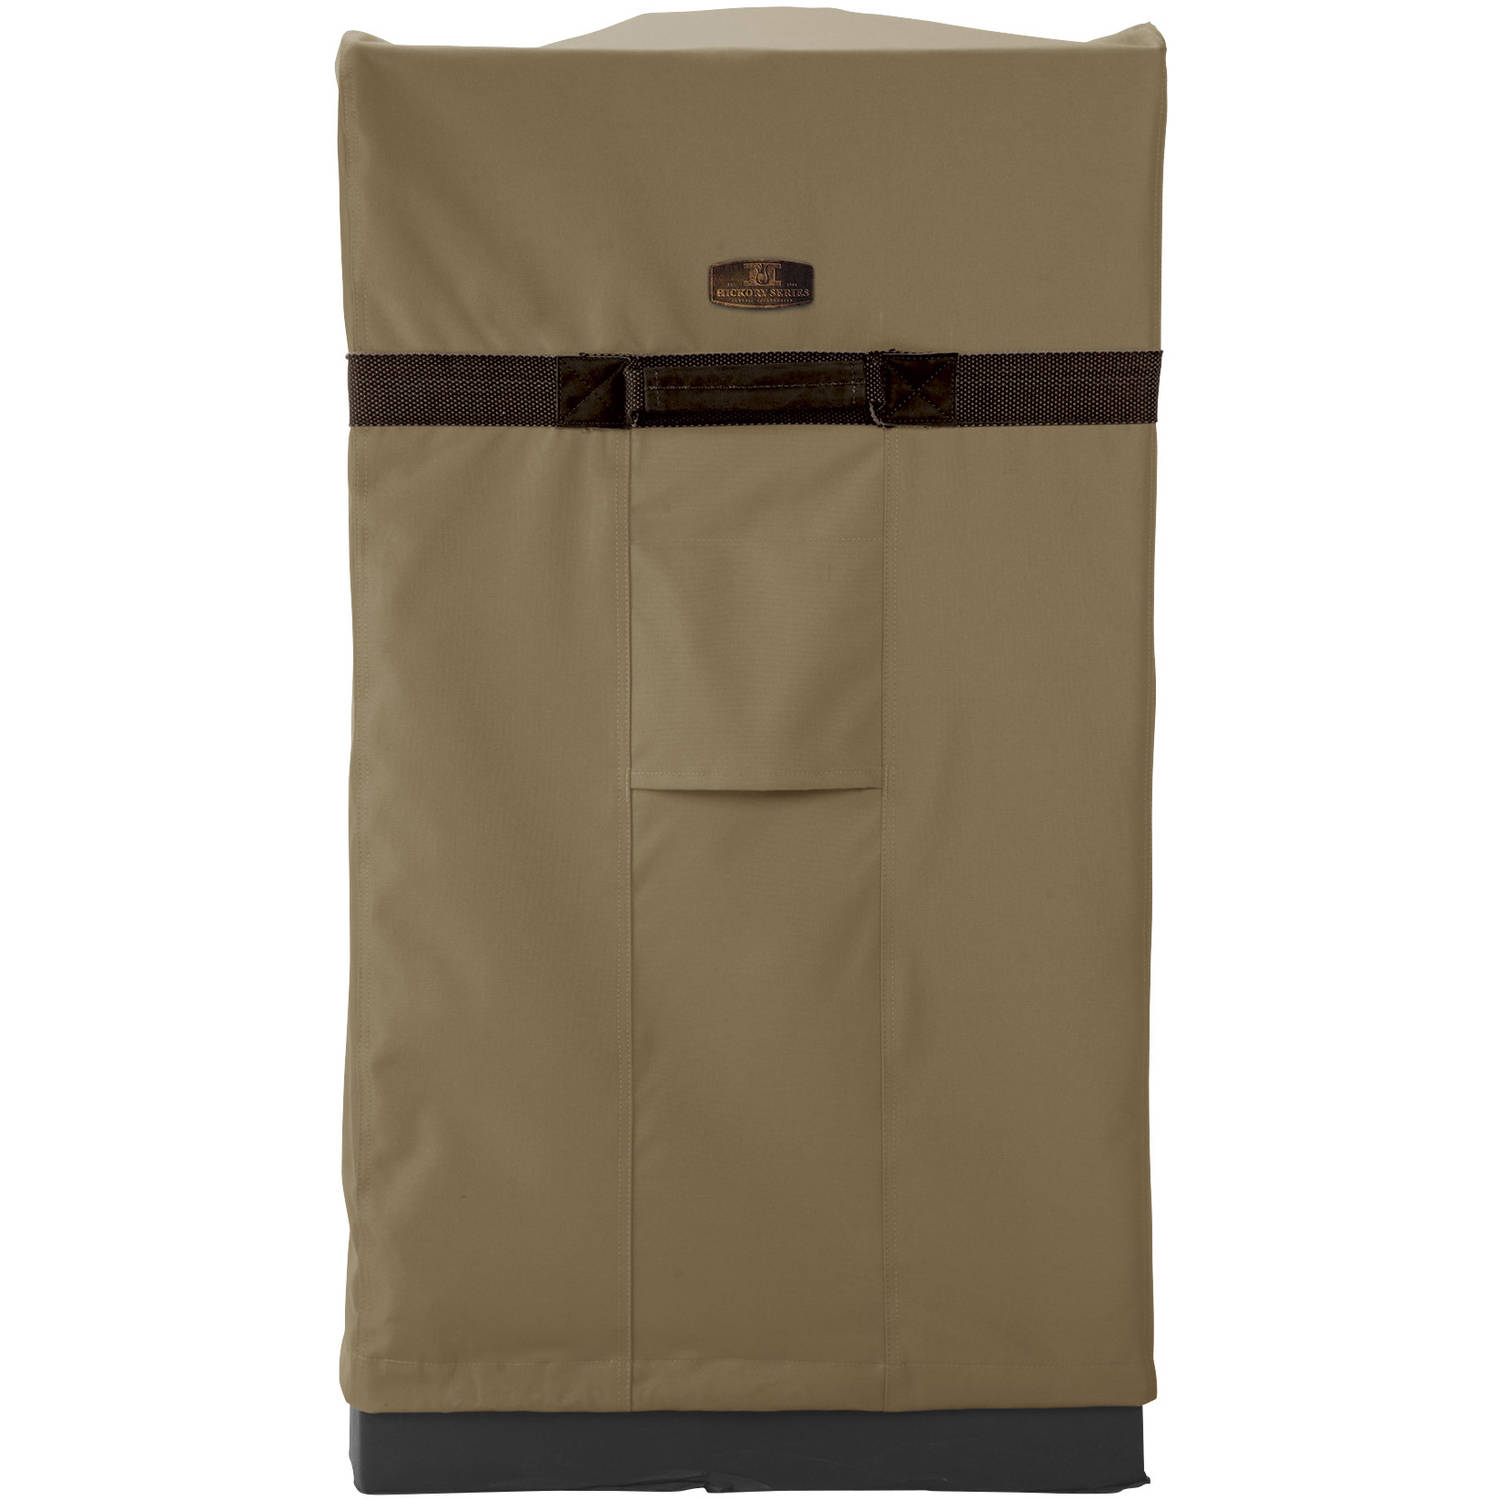 "Classic Accessories Hickory Square Smoker Patio Storage Cover, Up to 16""L x 21""W, Large"